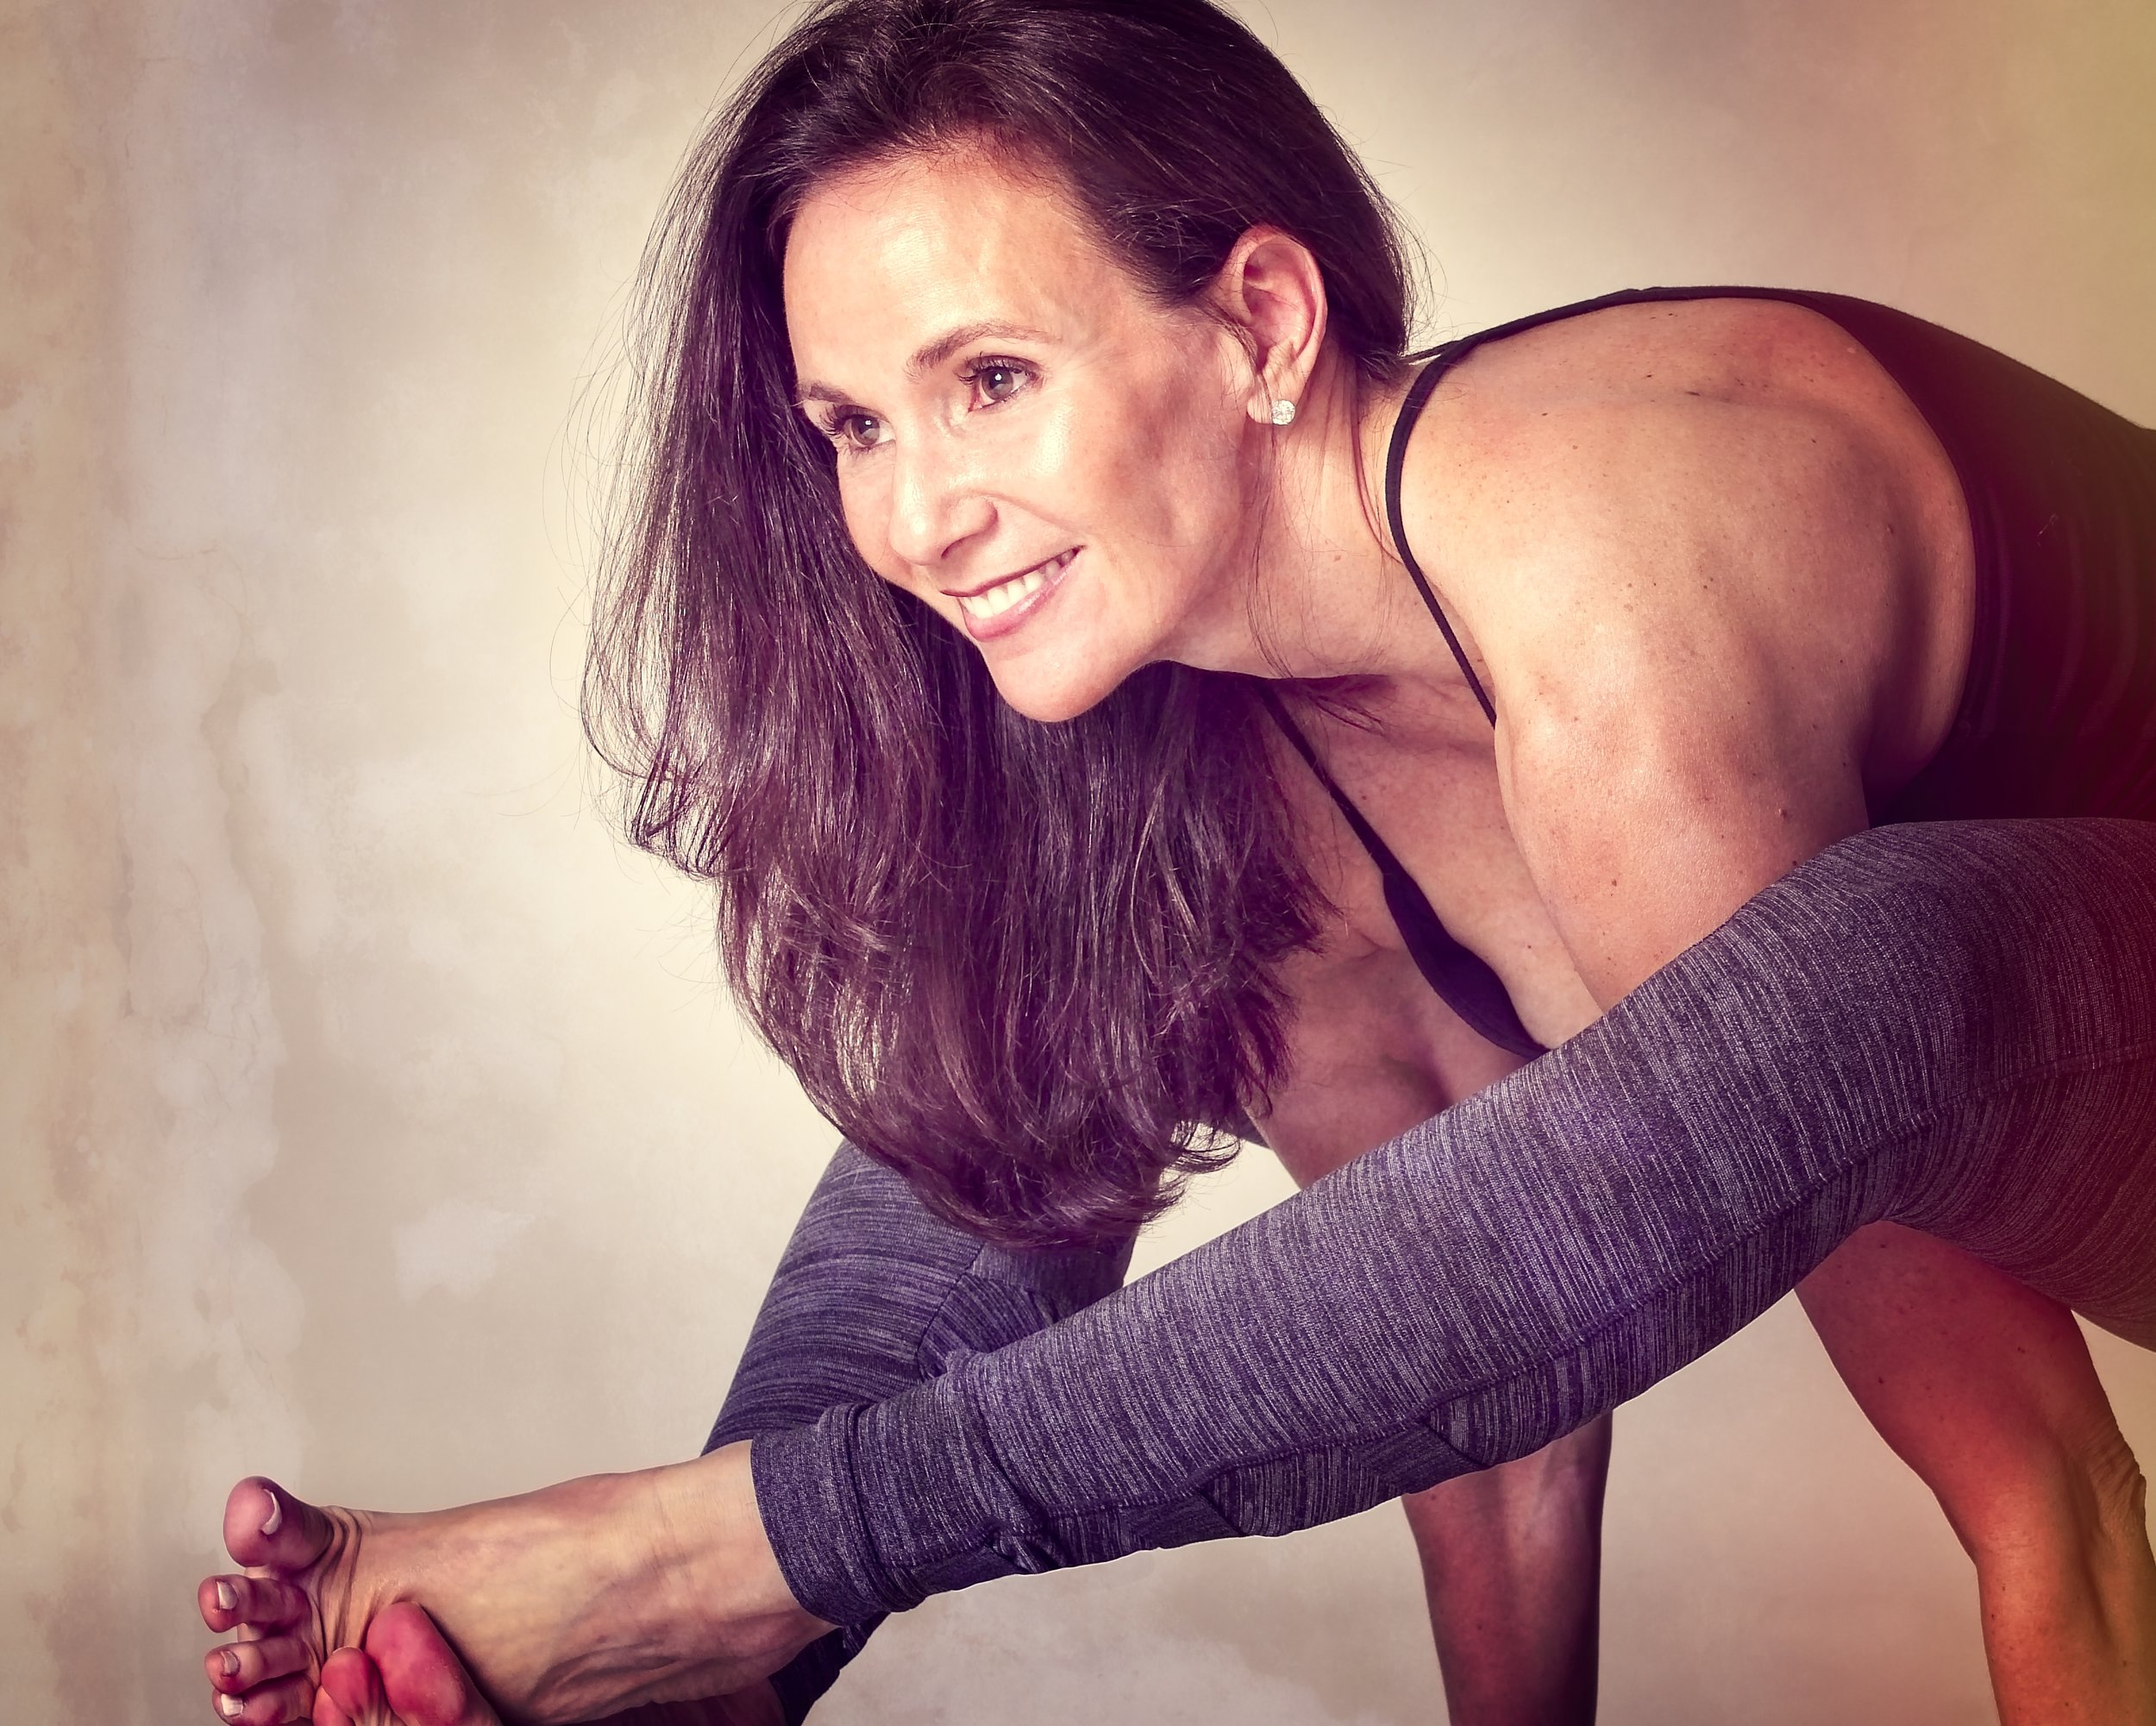 Gina Roden - Gina's methodical classes provides clear and concise instruction, no matter the level of yogi. She will walk you thru every state of the posture, providing a flow in the peaceful, present moment. You will leave her class both, physically and spiritually satisfied.